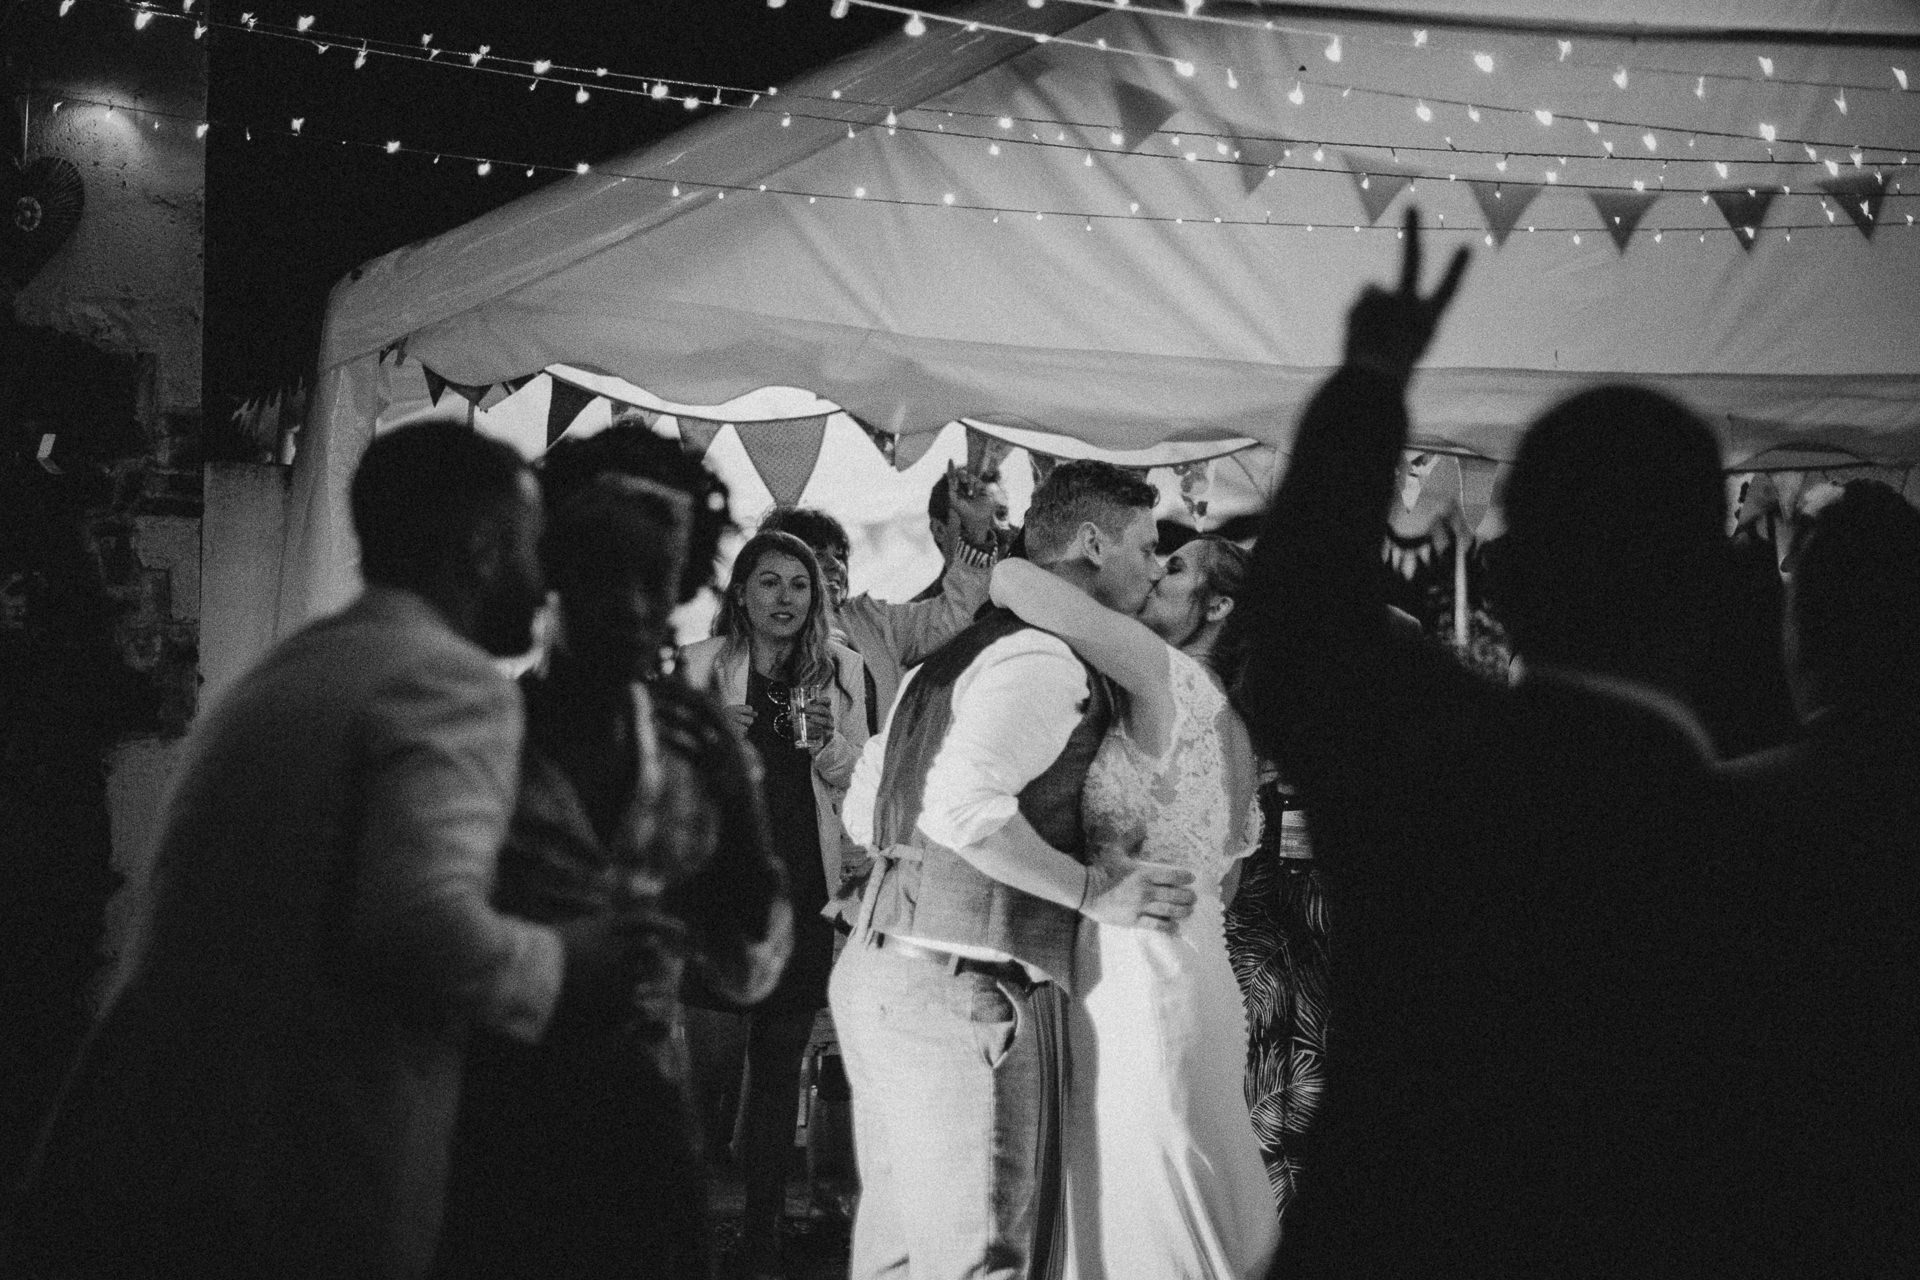 0081-DEVON-SOMERSET-WEDDING-PHOTOGRAPHER-0019-BEST-OF-2019-LOUISE-MAY-DEVON-SOMERSET-WEDDING-PHOTOGRAPHY-LM3_0291